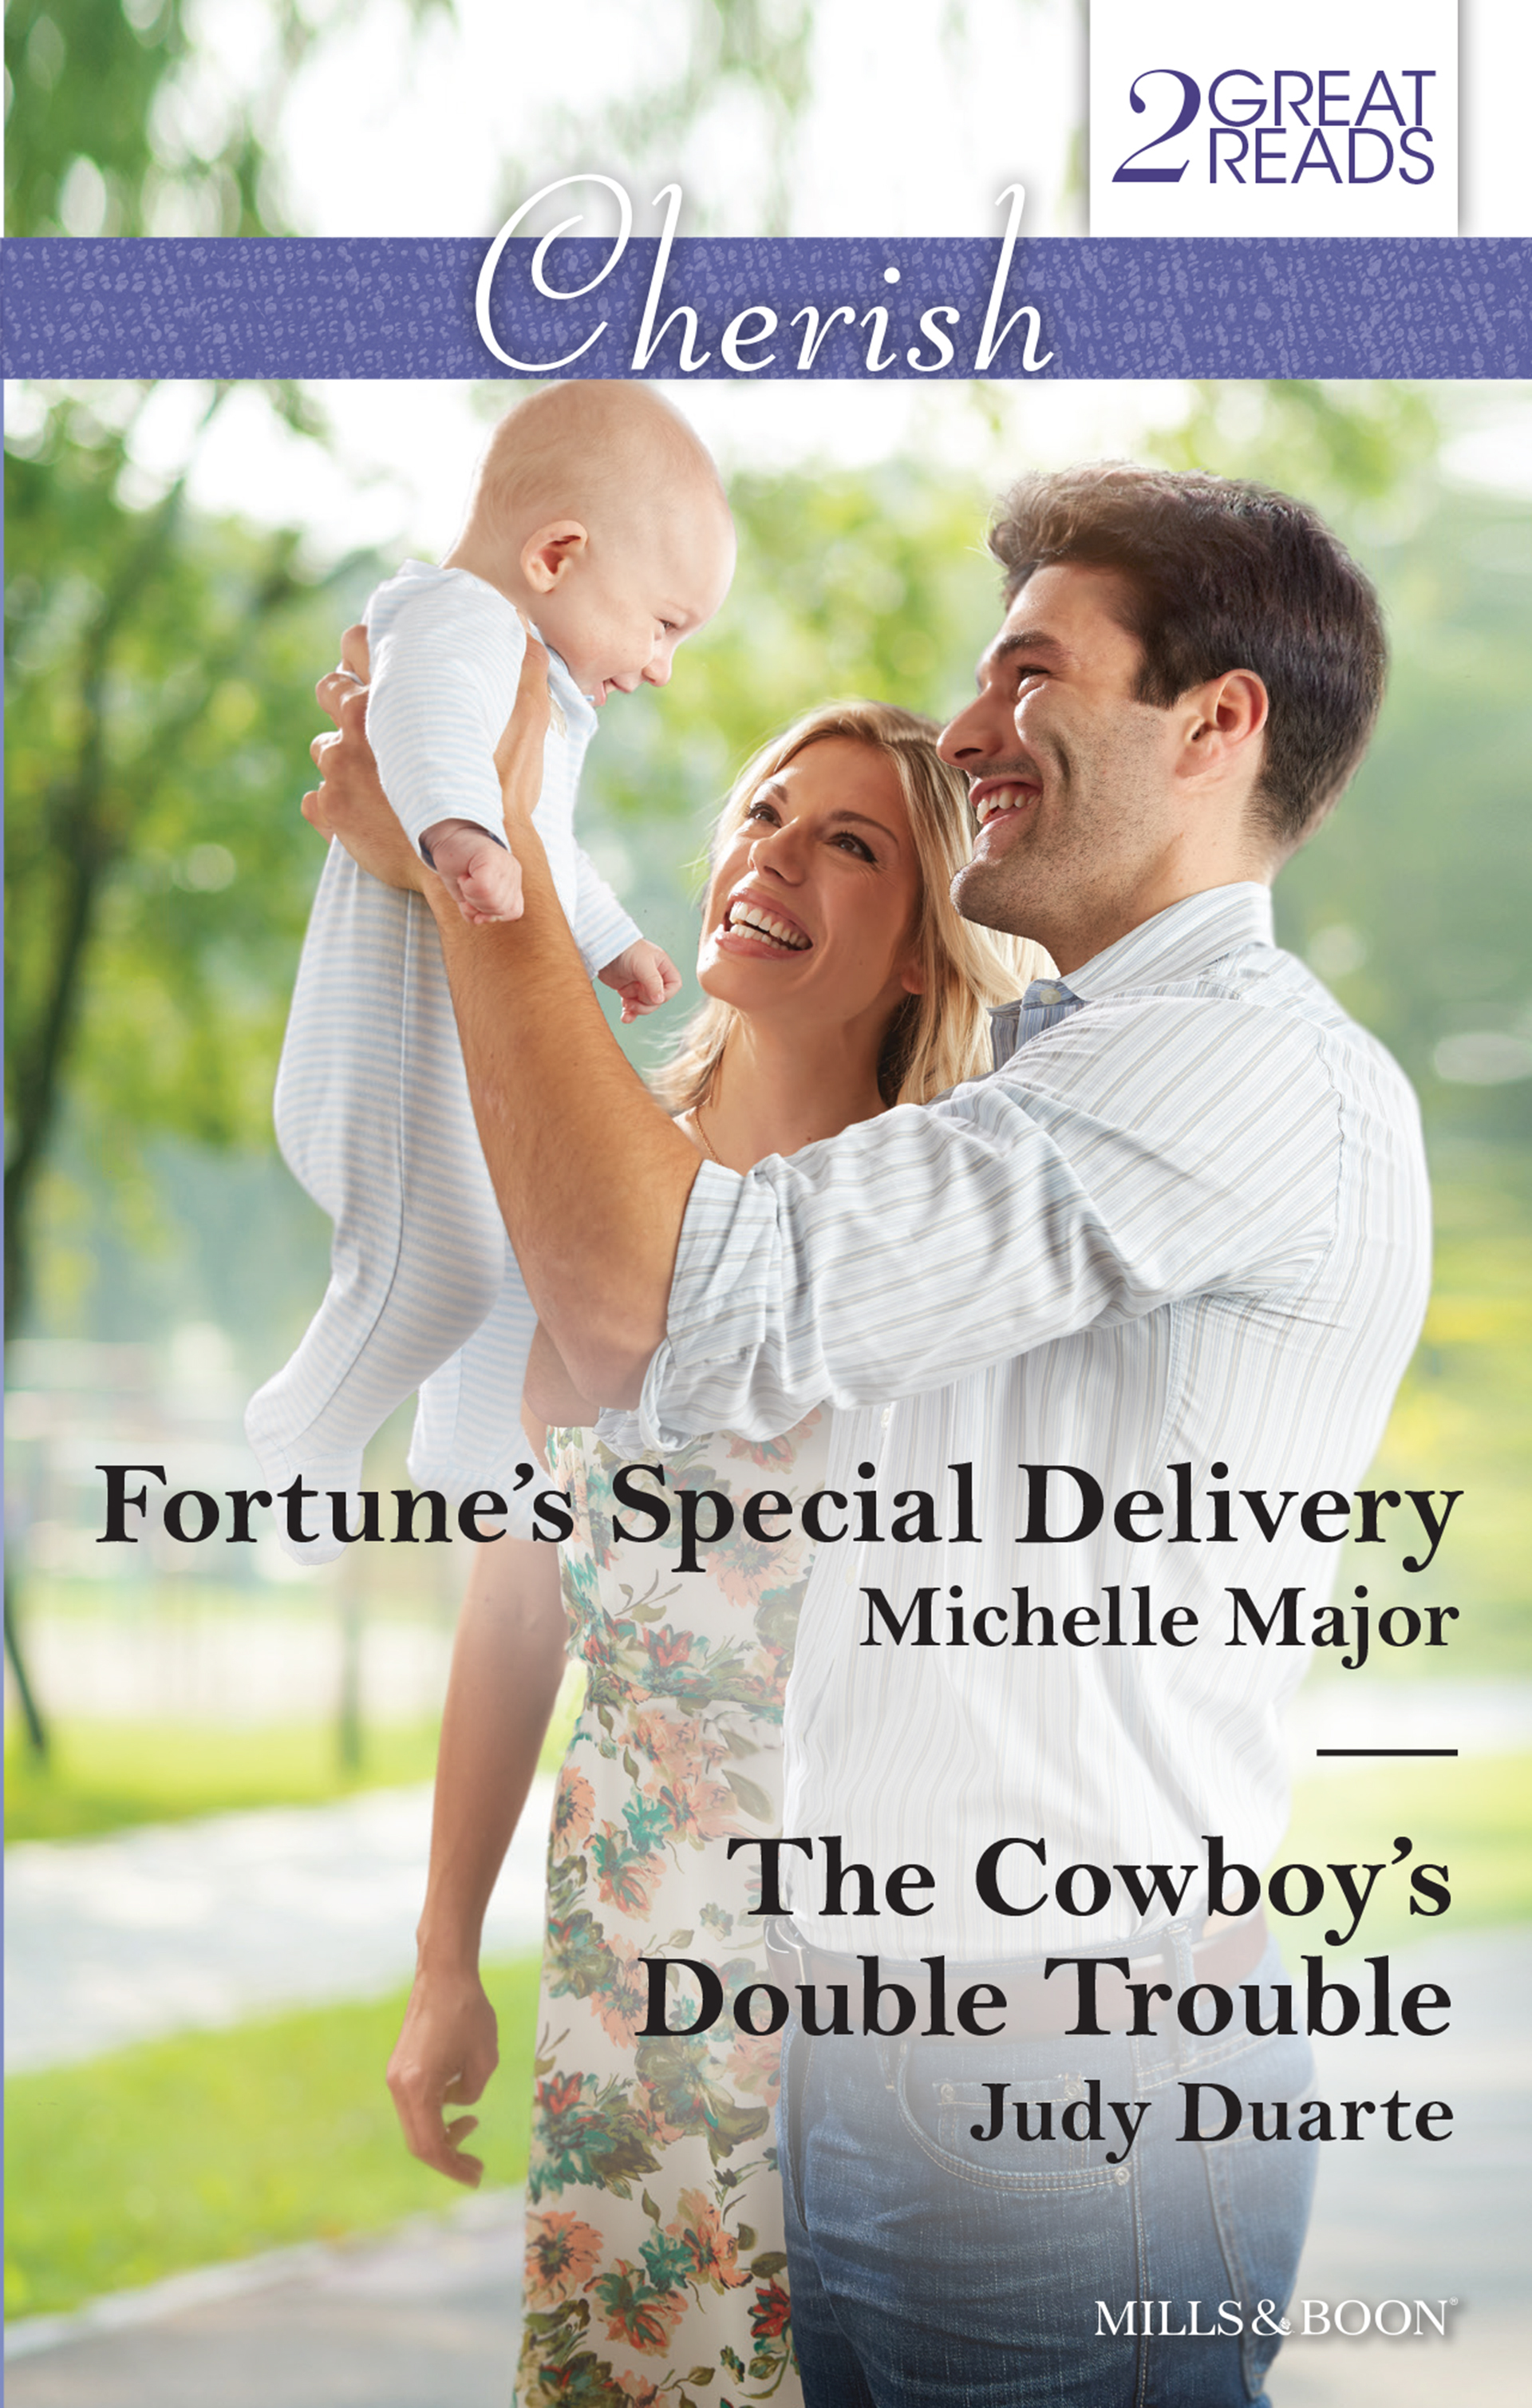 Fortune's Special Delivery / The Cowboy's Double Trouble